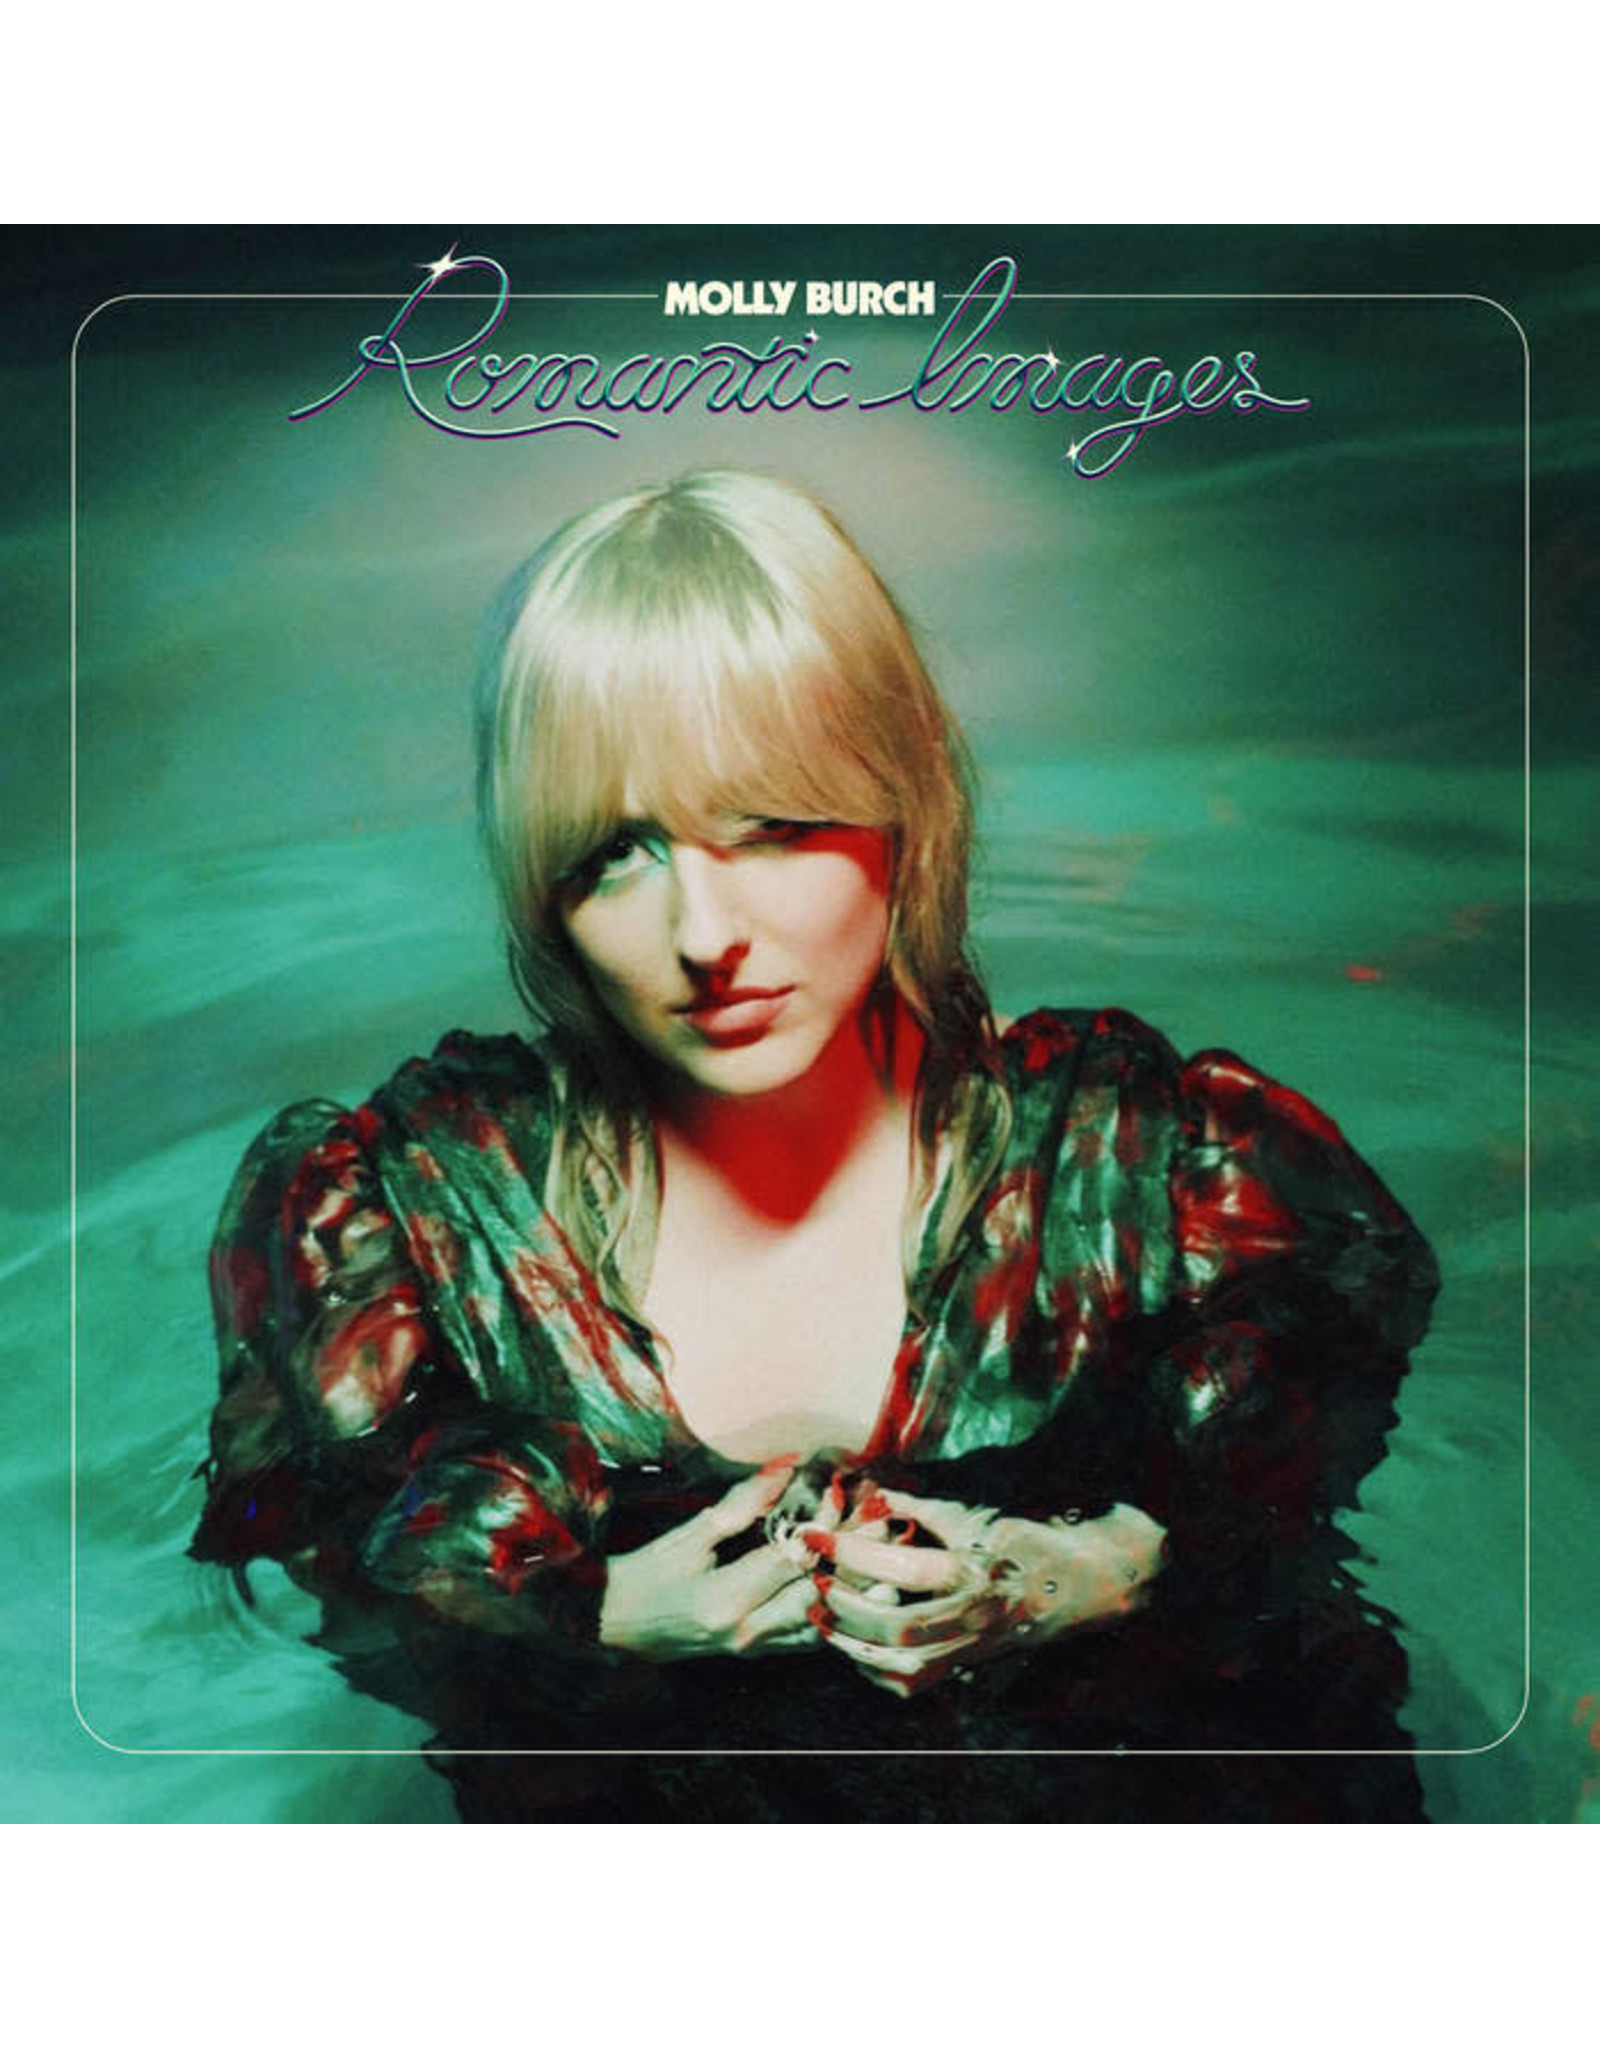 Burch, Molly - Romantic Images CD